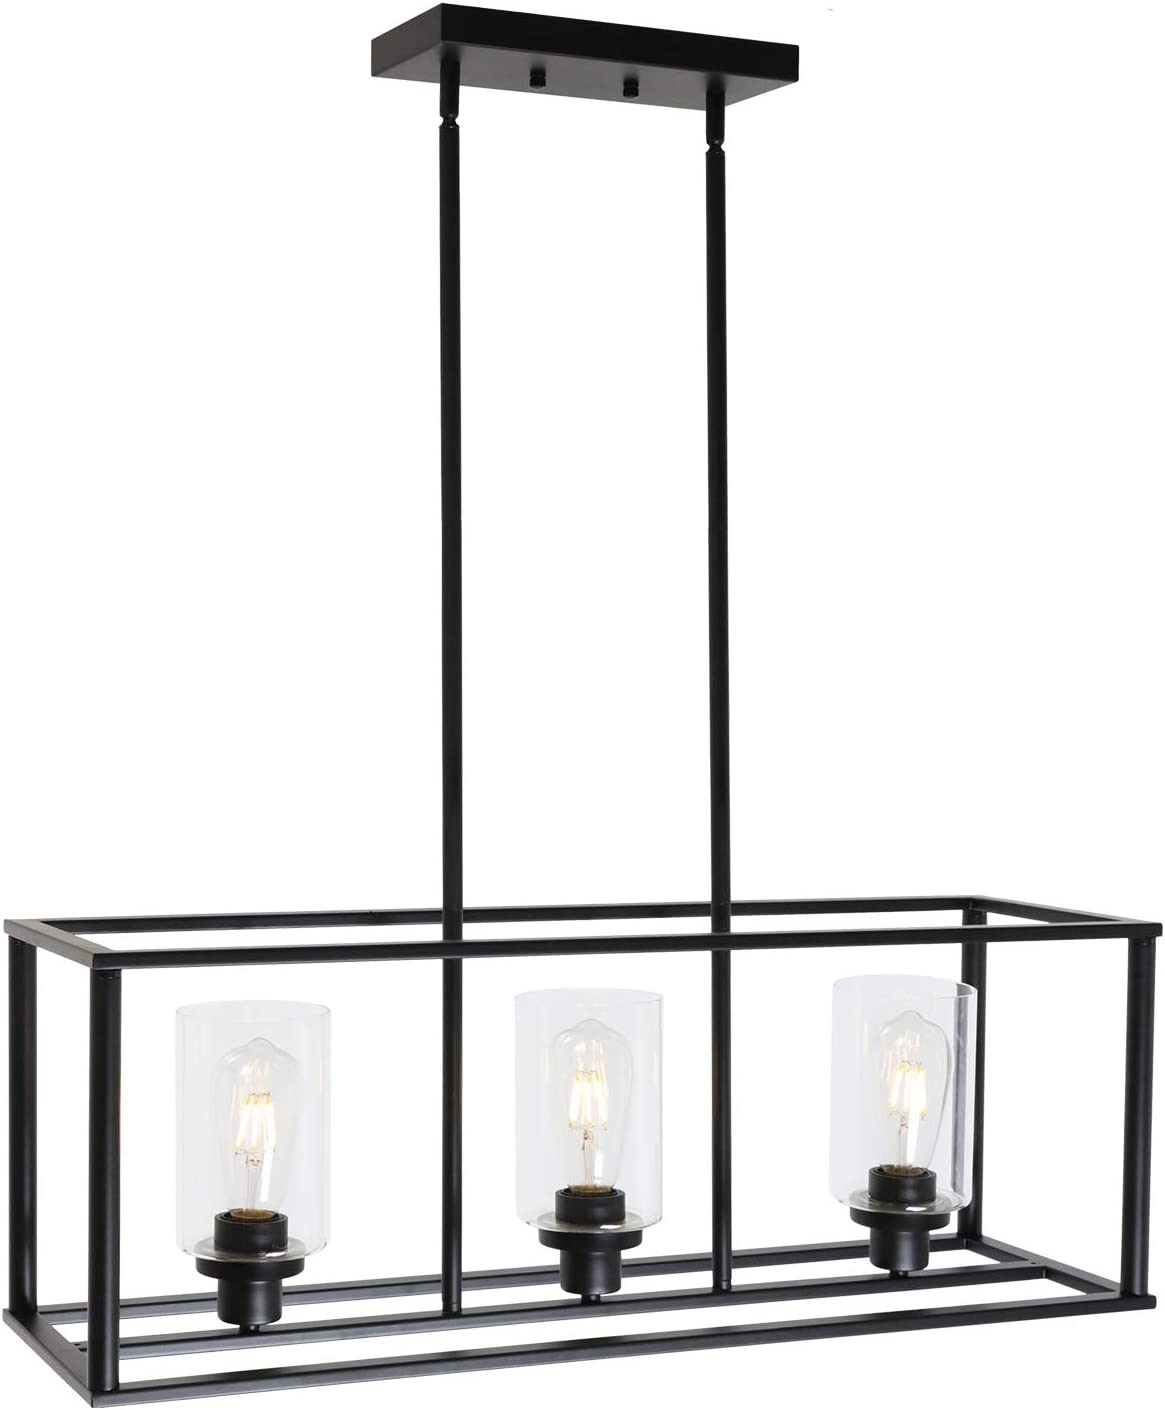 Vinluz 3 Light Kitchen Island Pendant Lighting Black Contemporary Industrial Linear Chandelier With Clear Glass Shade For Dining Room Kitchen Island Living Room Amazon Com